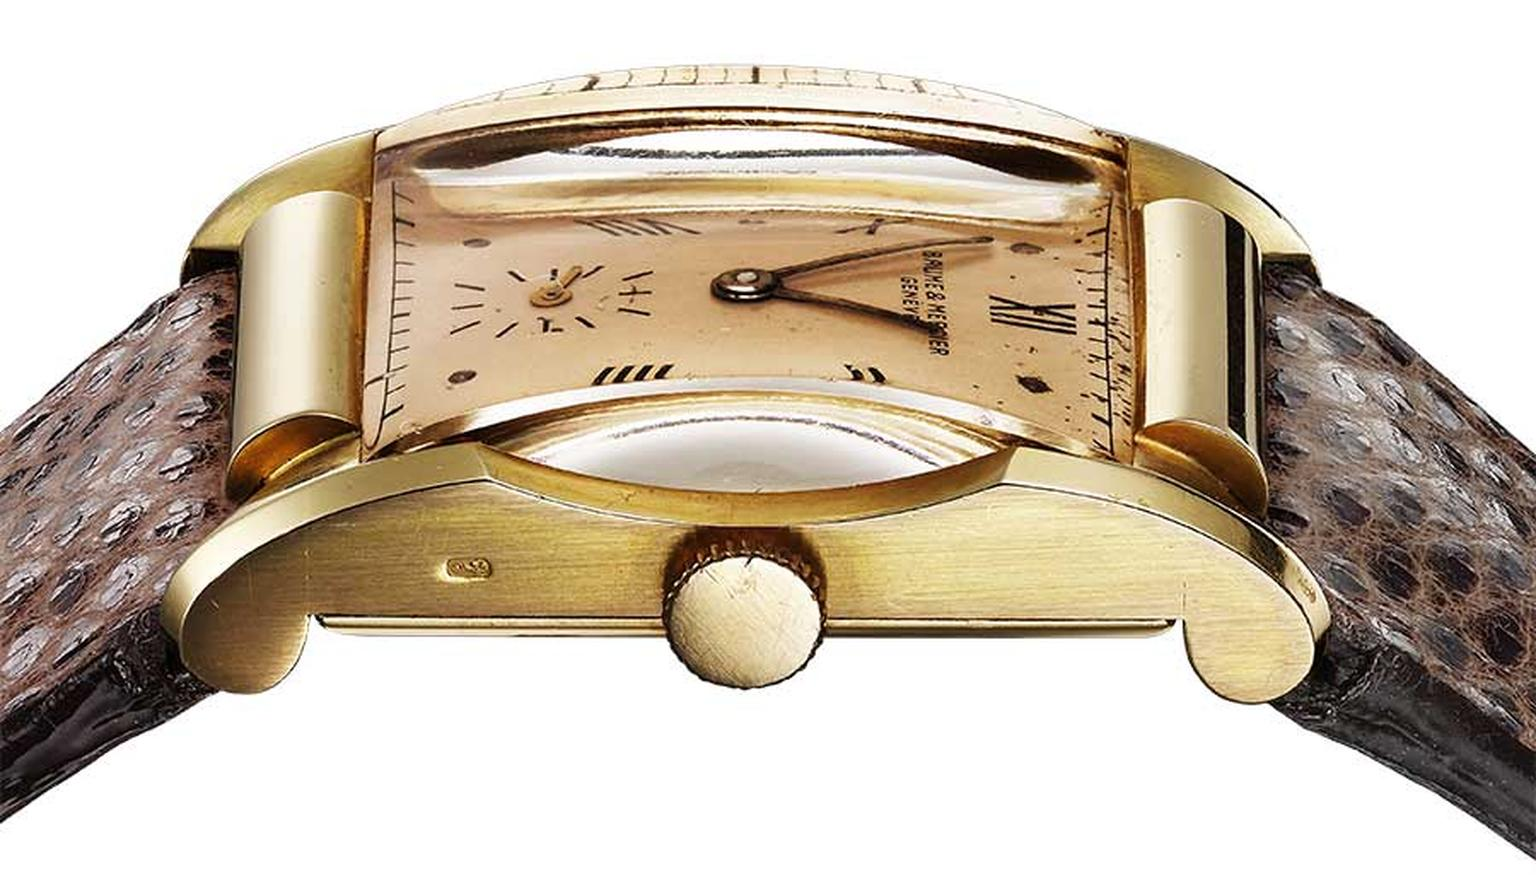 Baume et Mercier Historical Watch